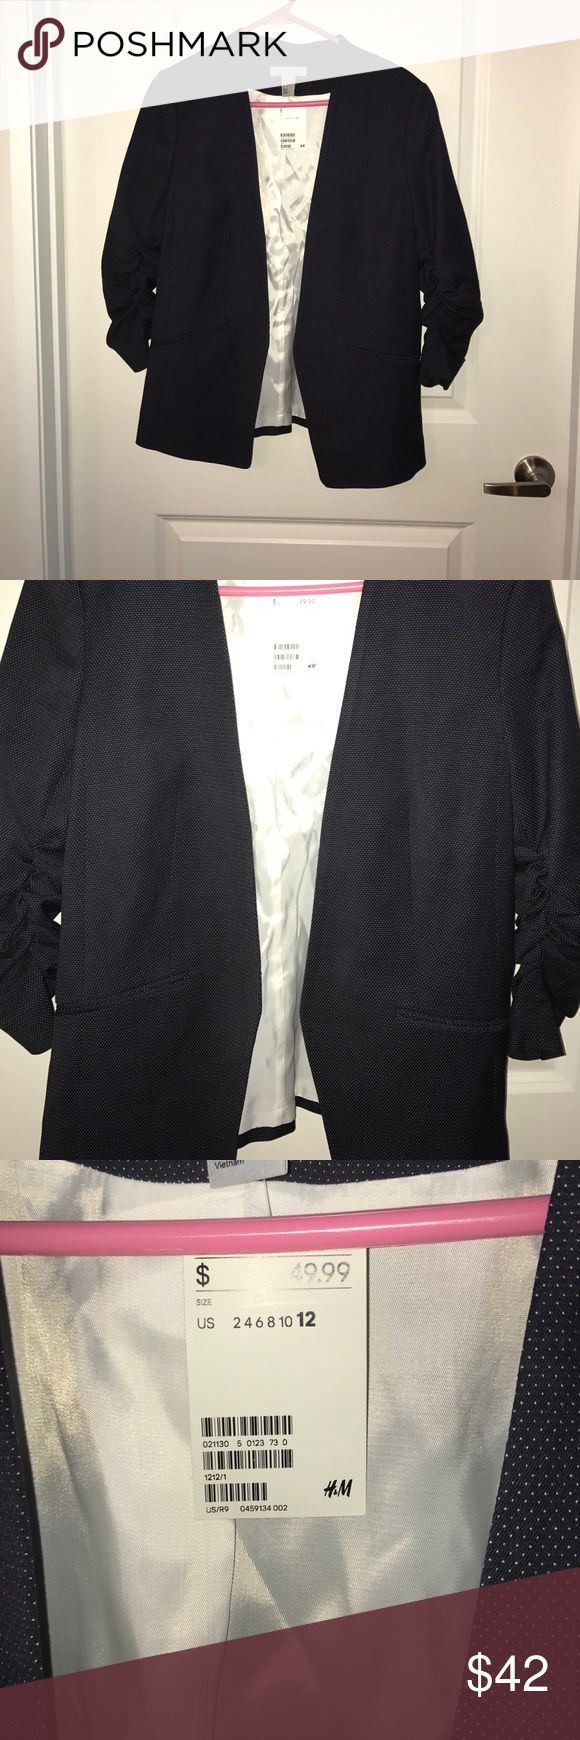 NWT H&M Blazer Never worn. Too small for me H&M Jackets & Coats Blazers